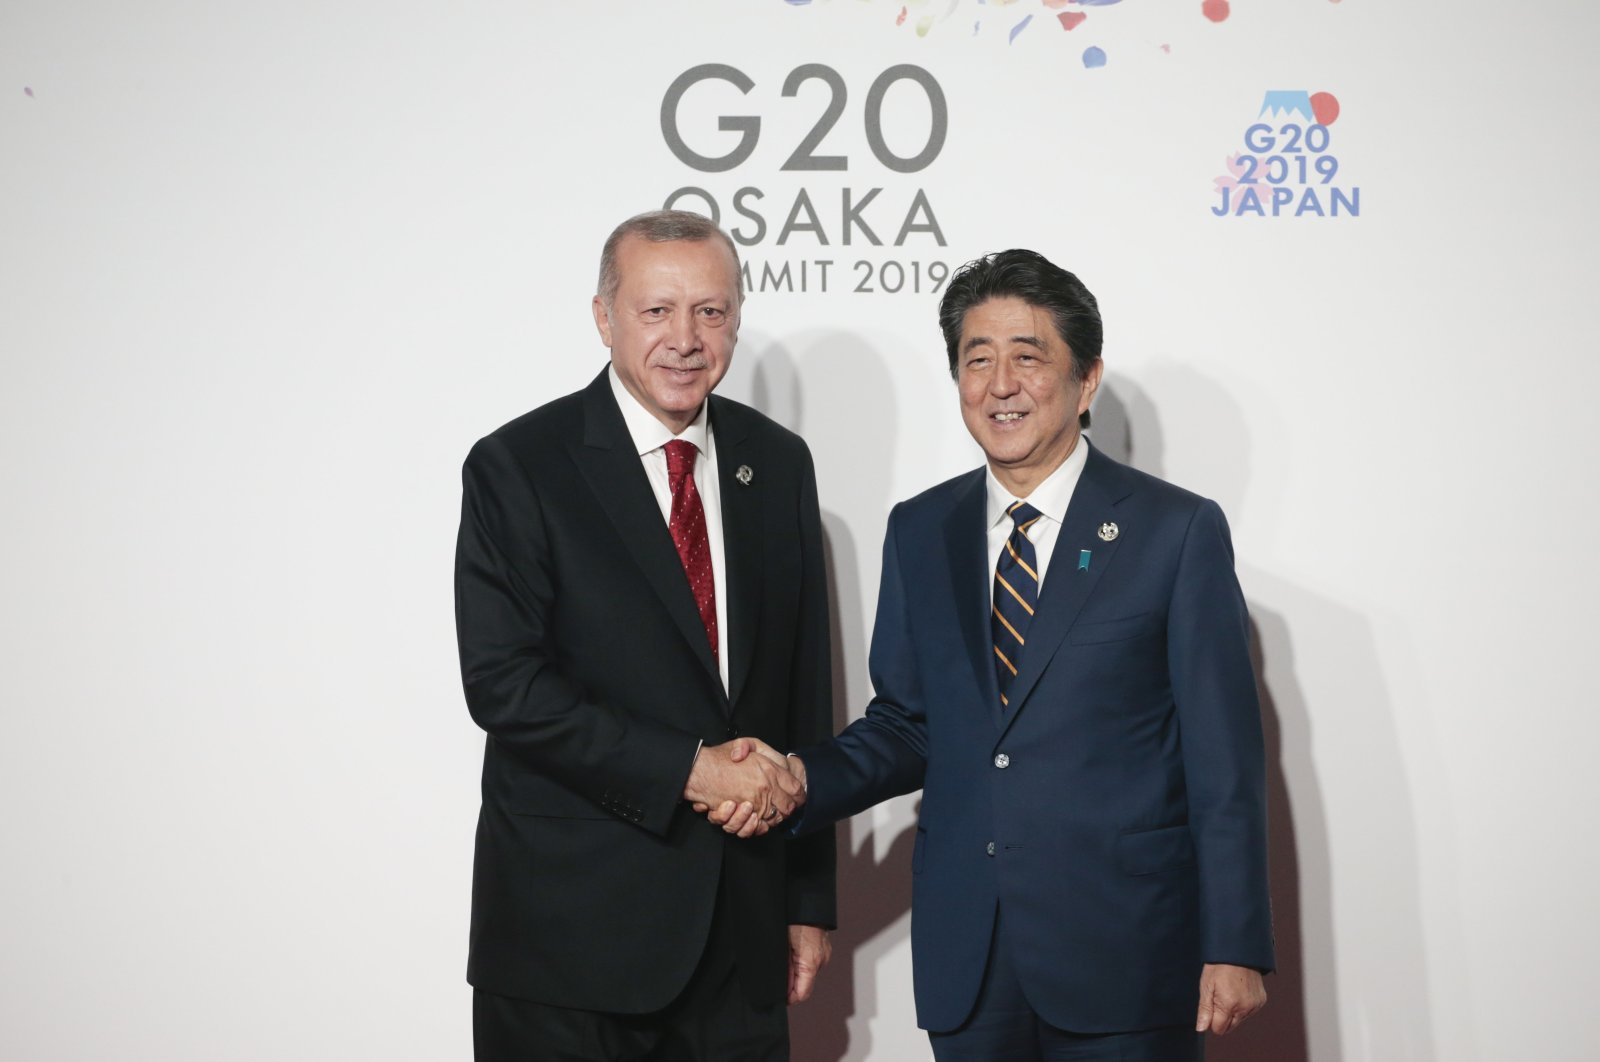 President Recep Tayyip Erdoğan was welcomed by Japanese Prime Minister Shinzo Abe during his visit for the G-20 Osaka leaders summit, July 1, 2020. (AA Photo)